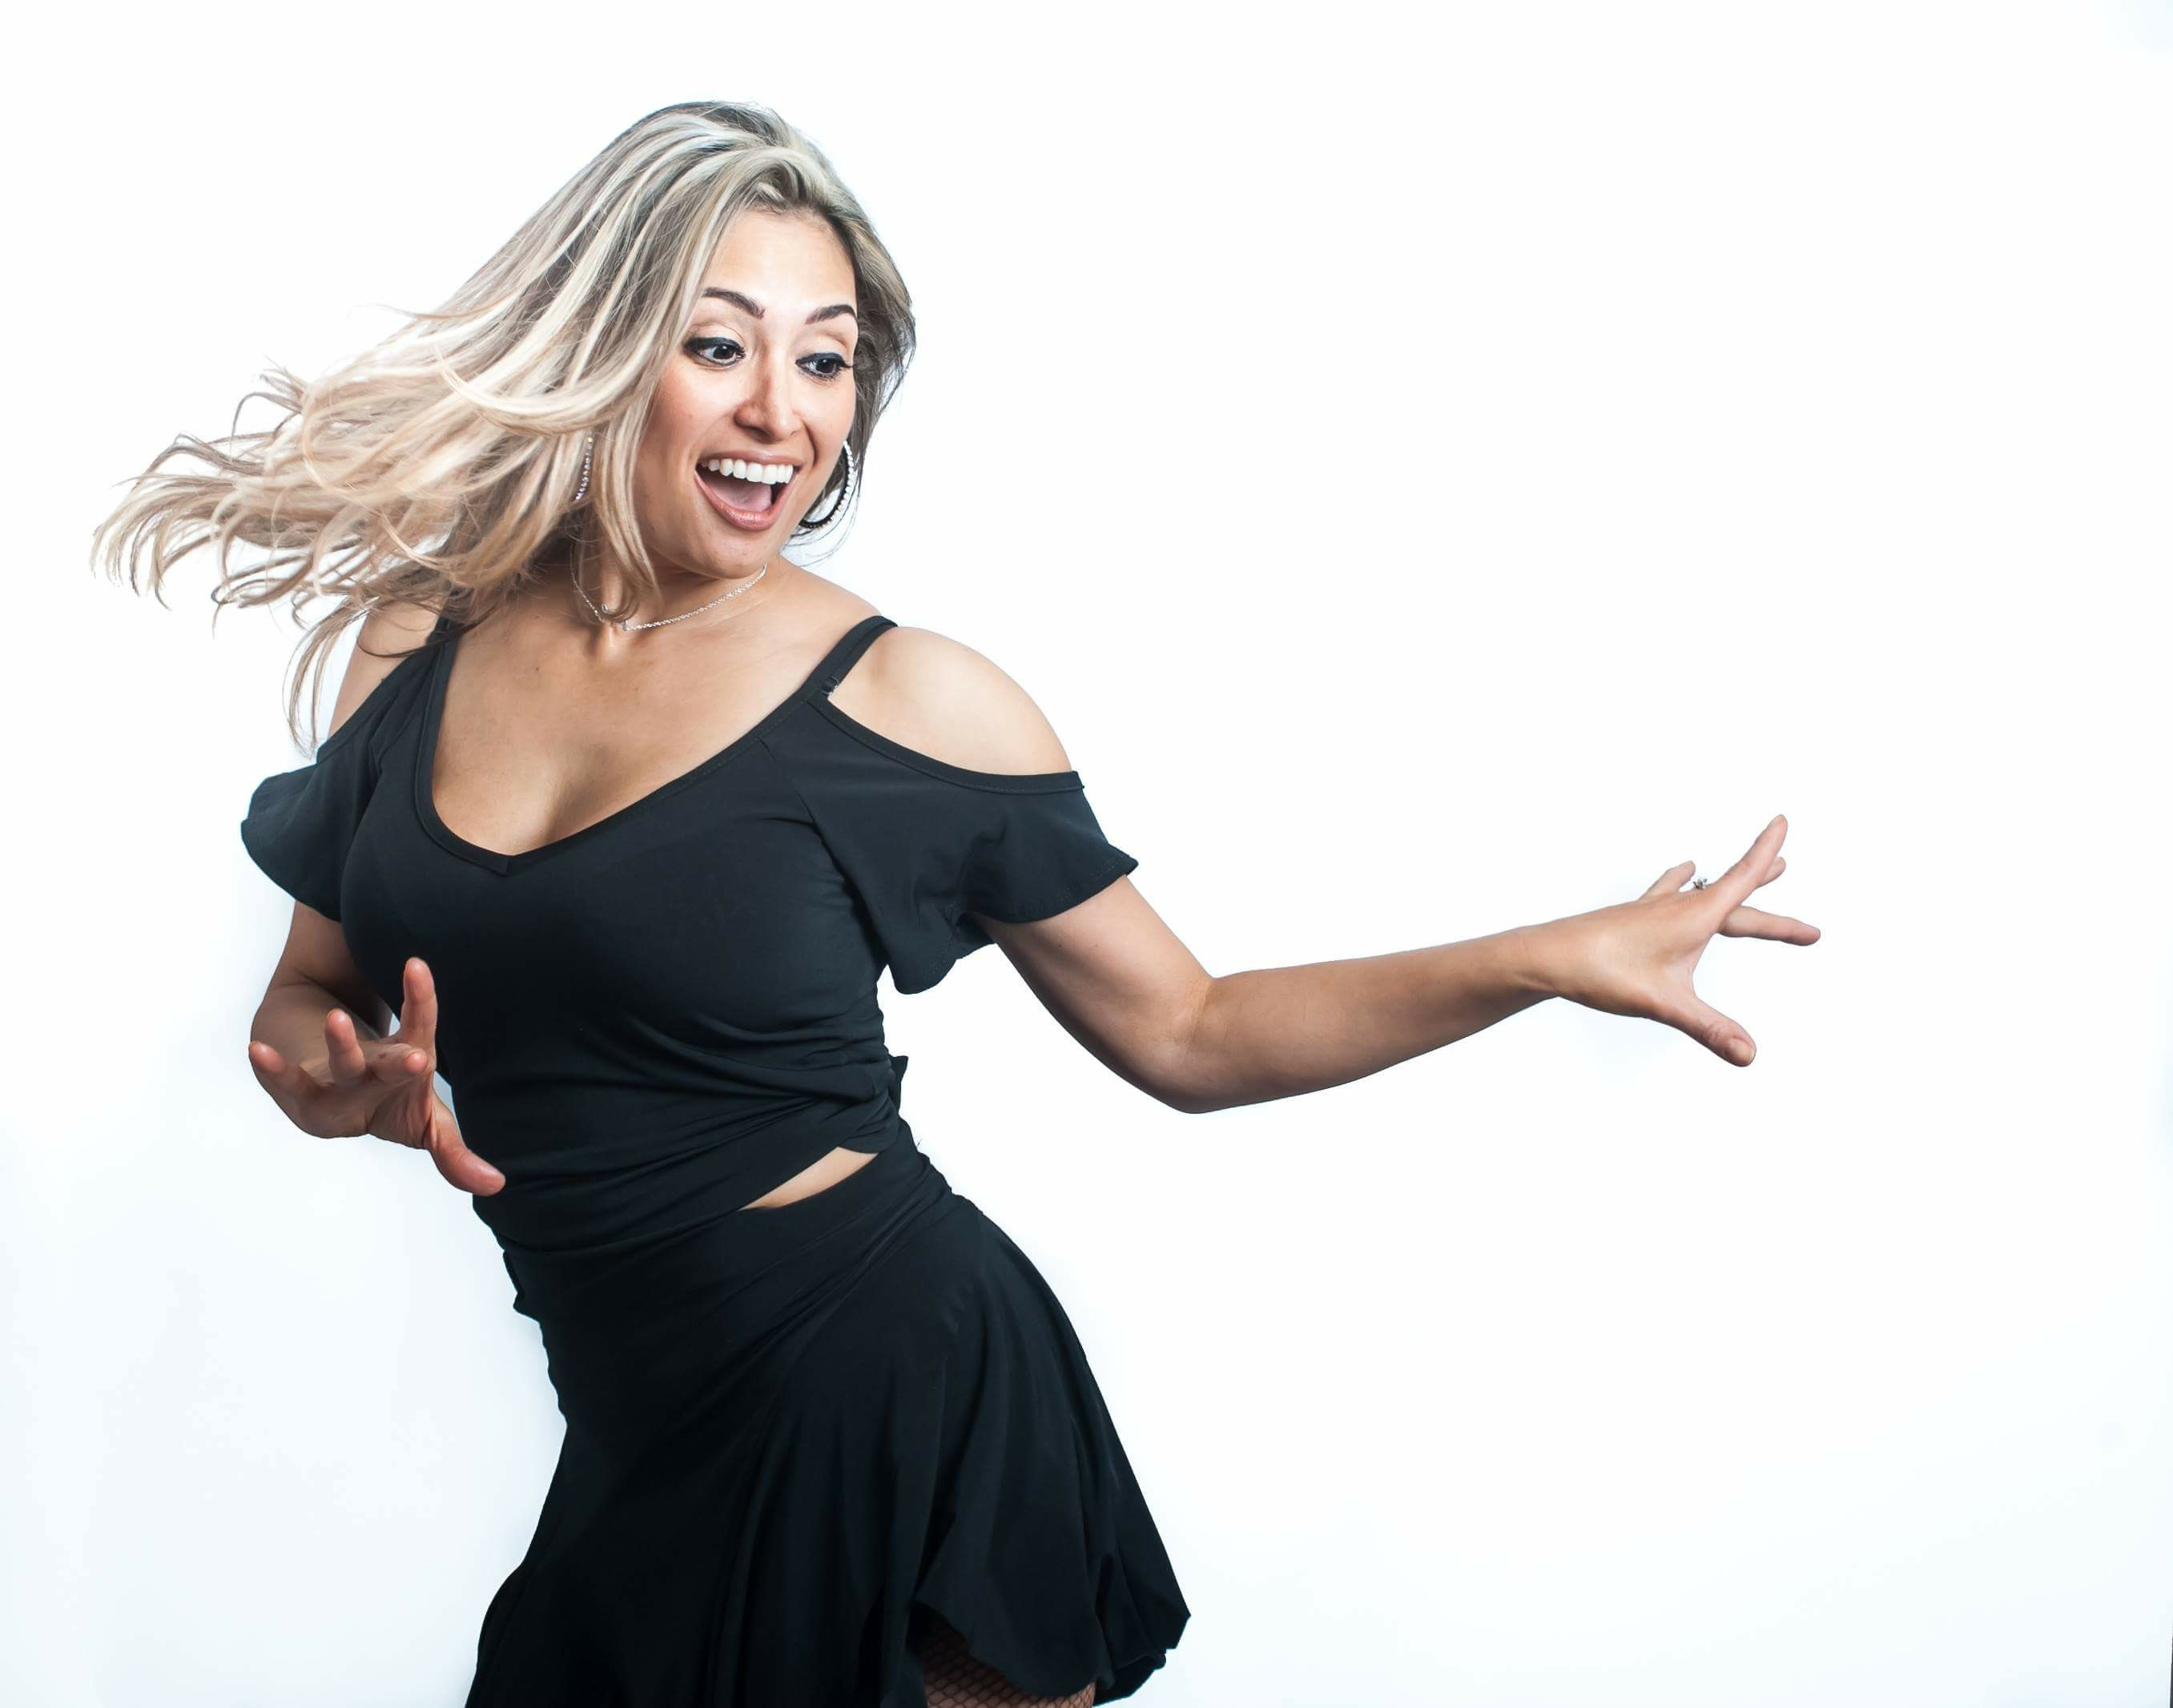 Welcoming back to Latinfest in Feb……Jennifer Benavidez (Salsa)